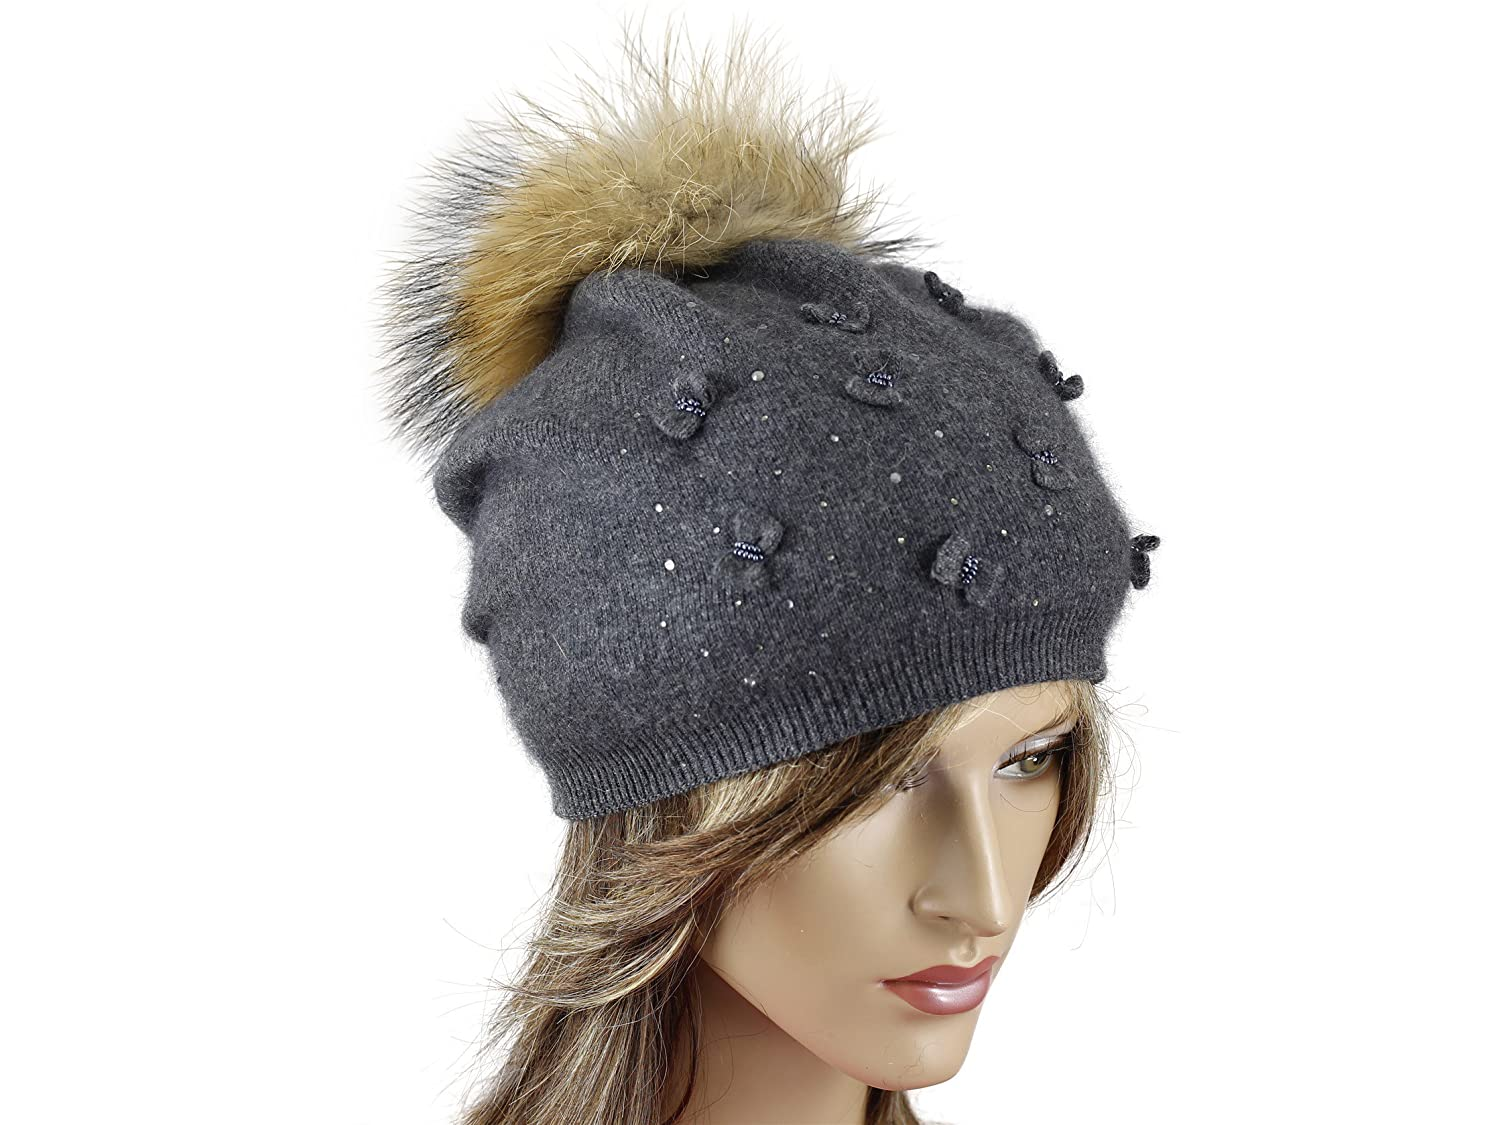 Elegant Knitted decorated with natural fur and rhinestones, small bows on the front pom-pom removable Hat warm